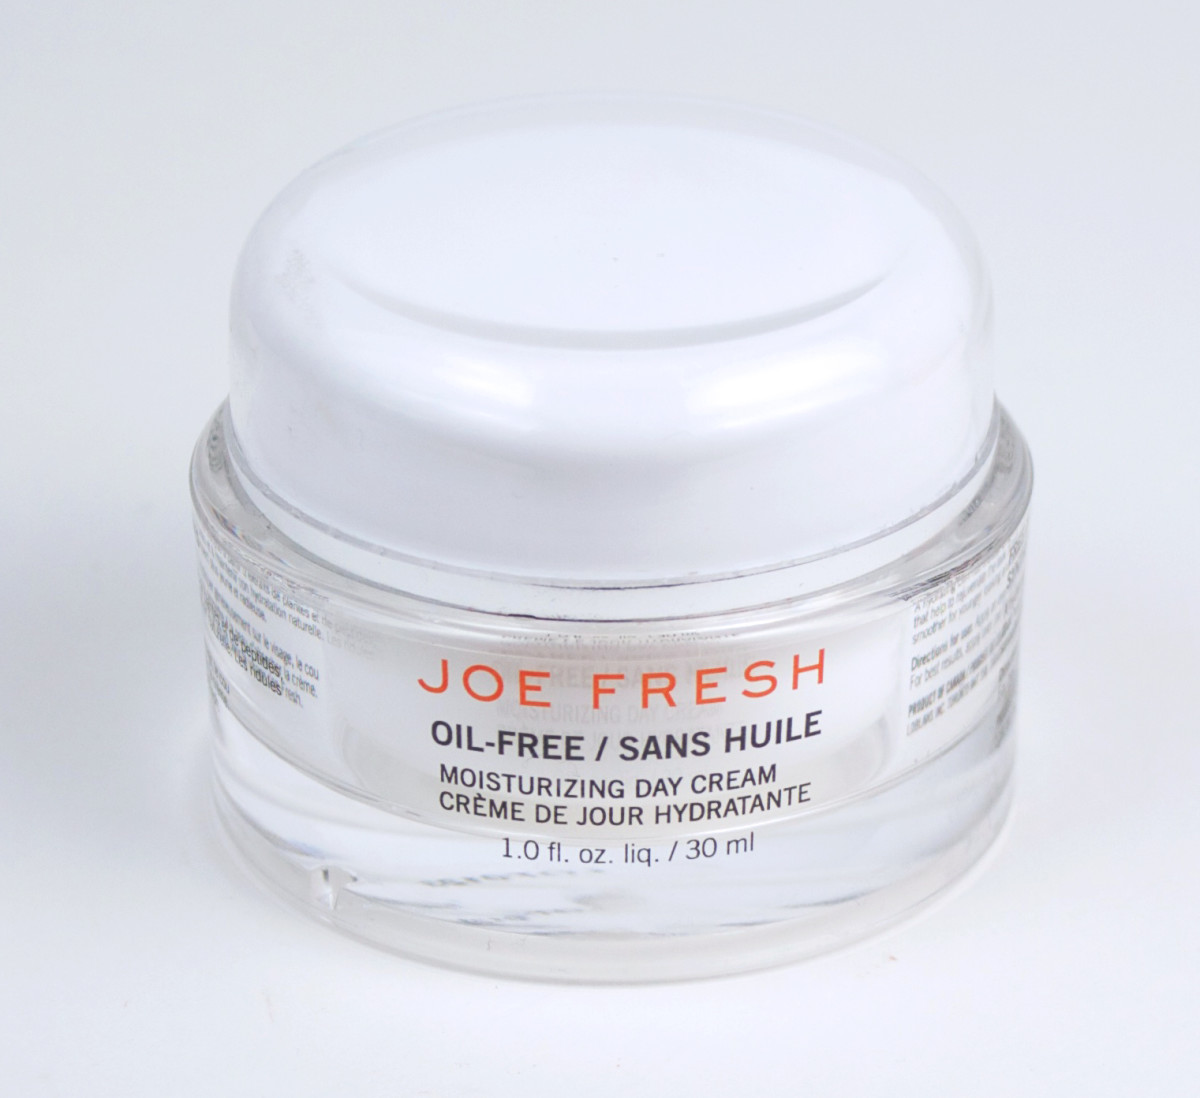 Joe Fresh Oil-Free Moisturizing Day Cream